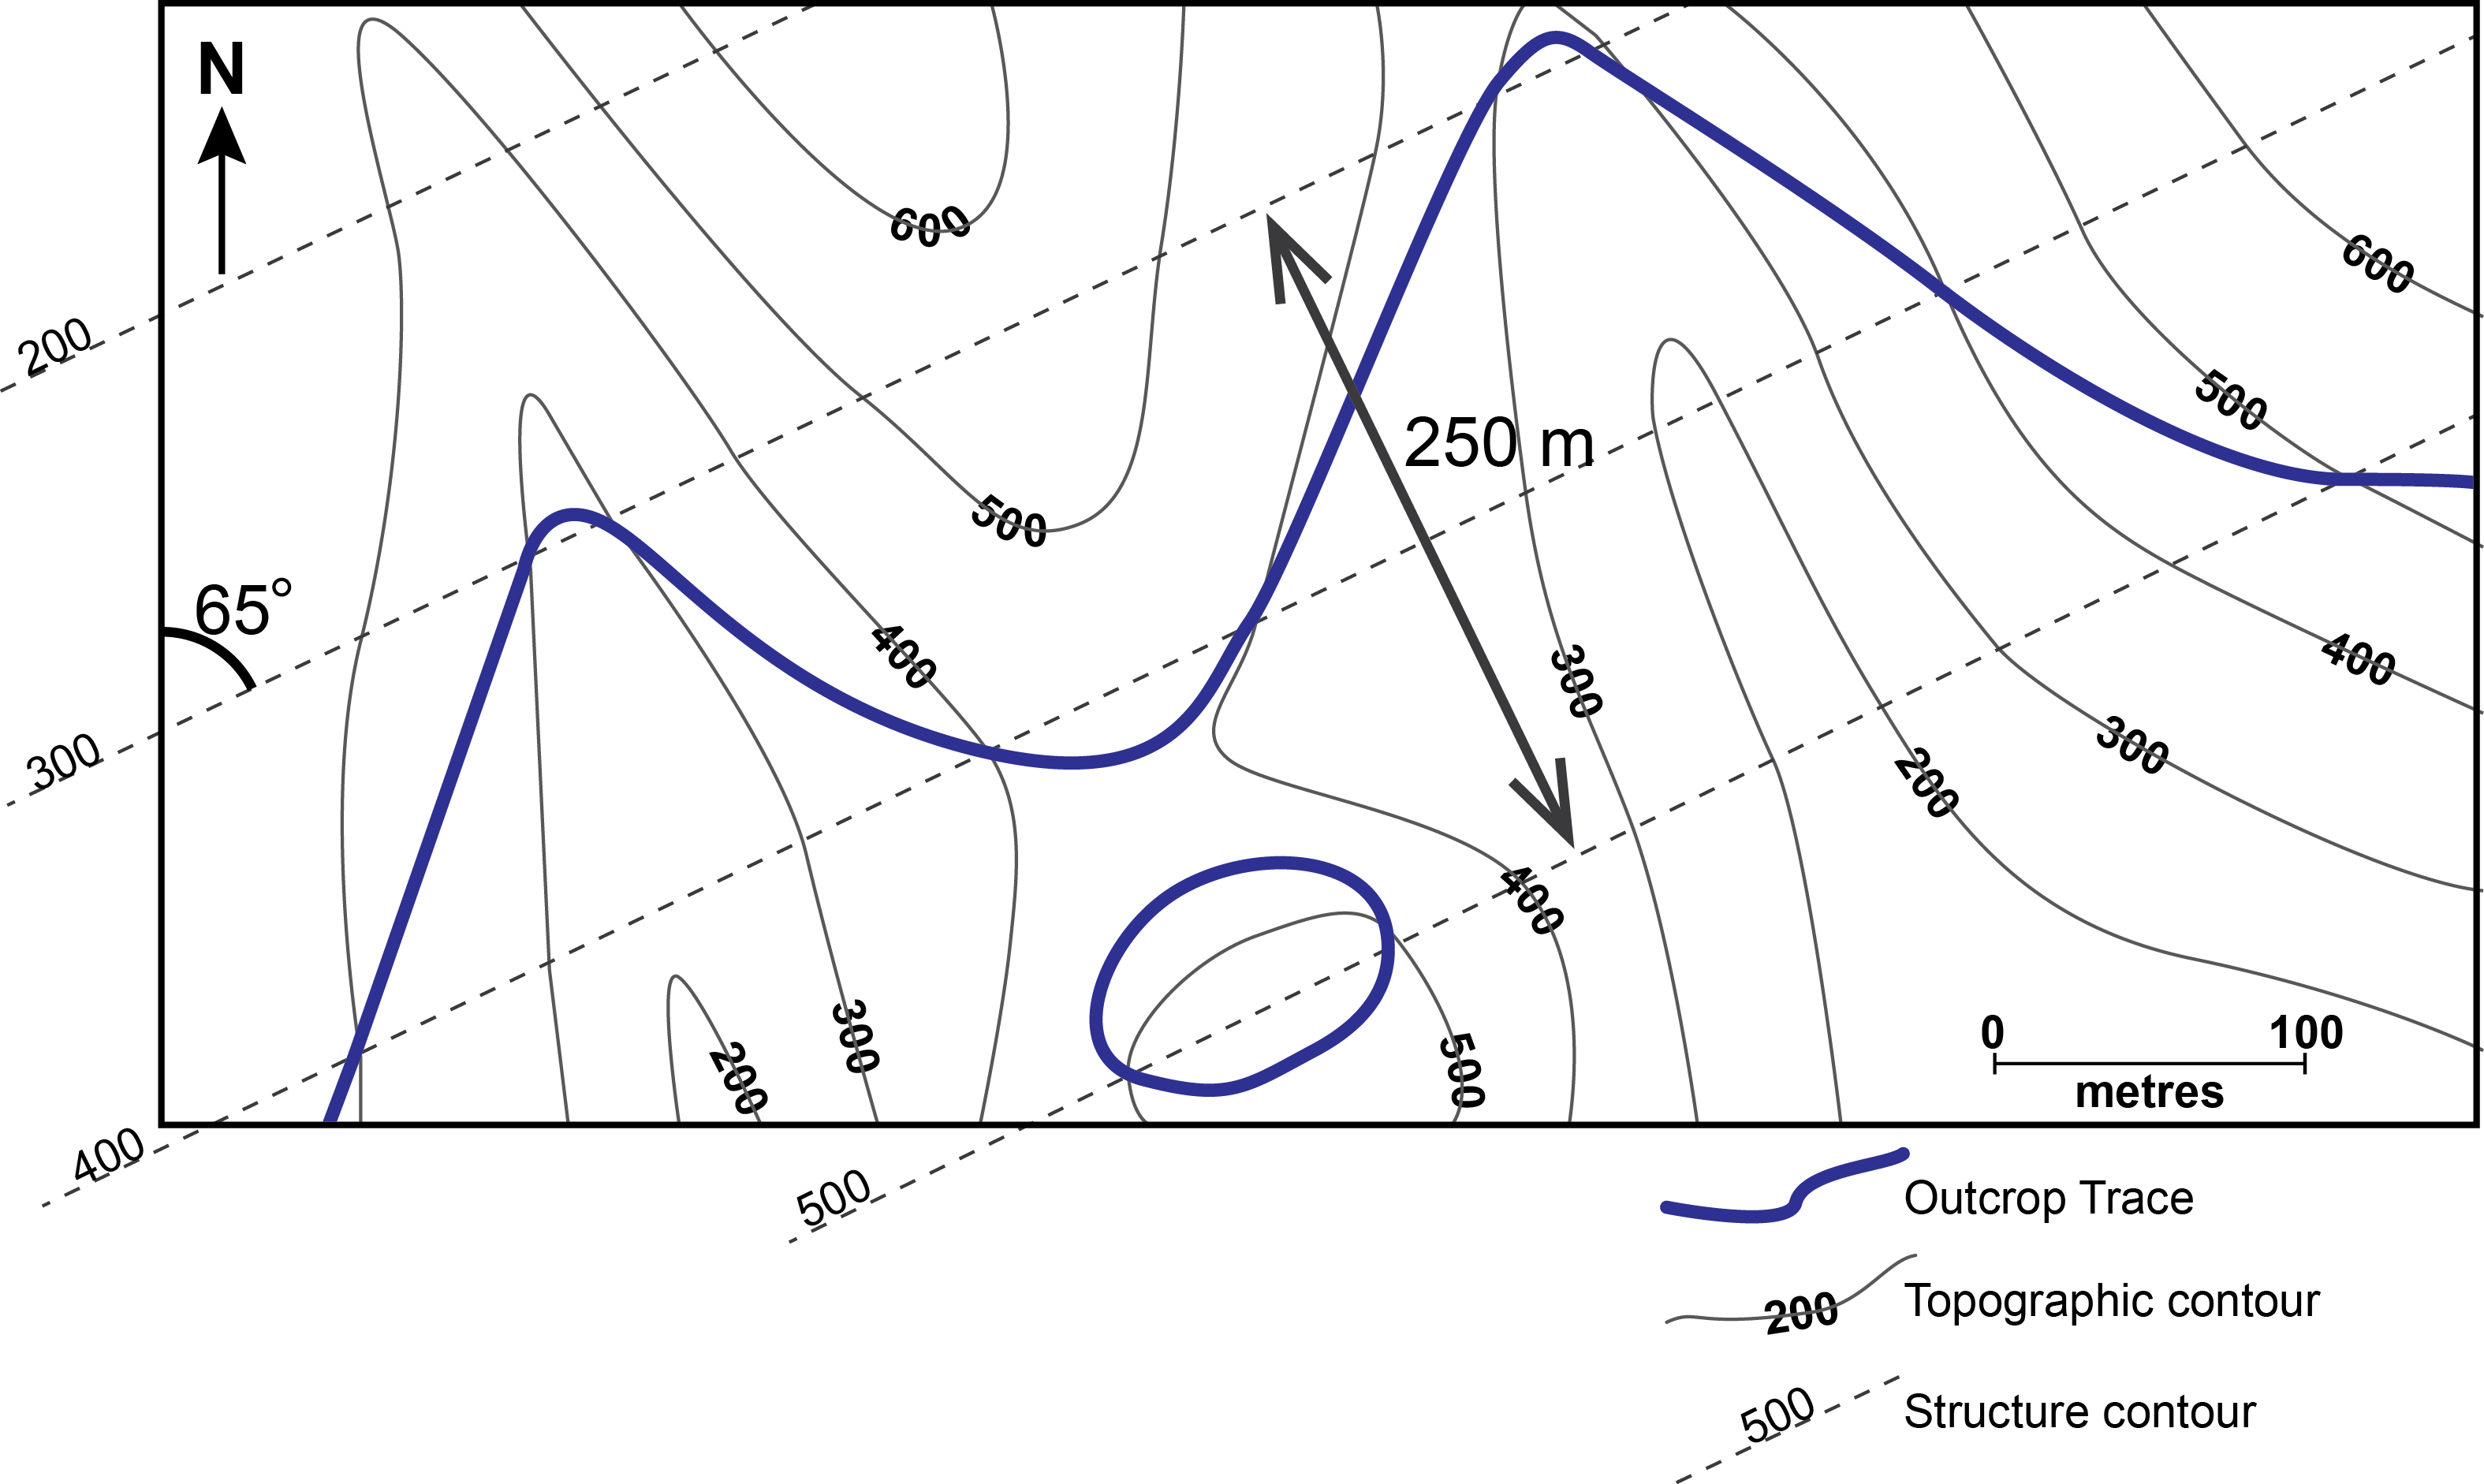 Structure contour construction on the map in Fig. 9